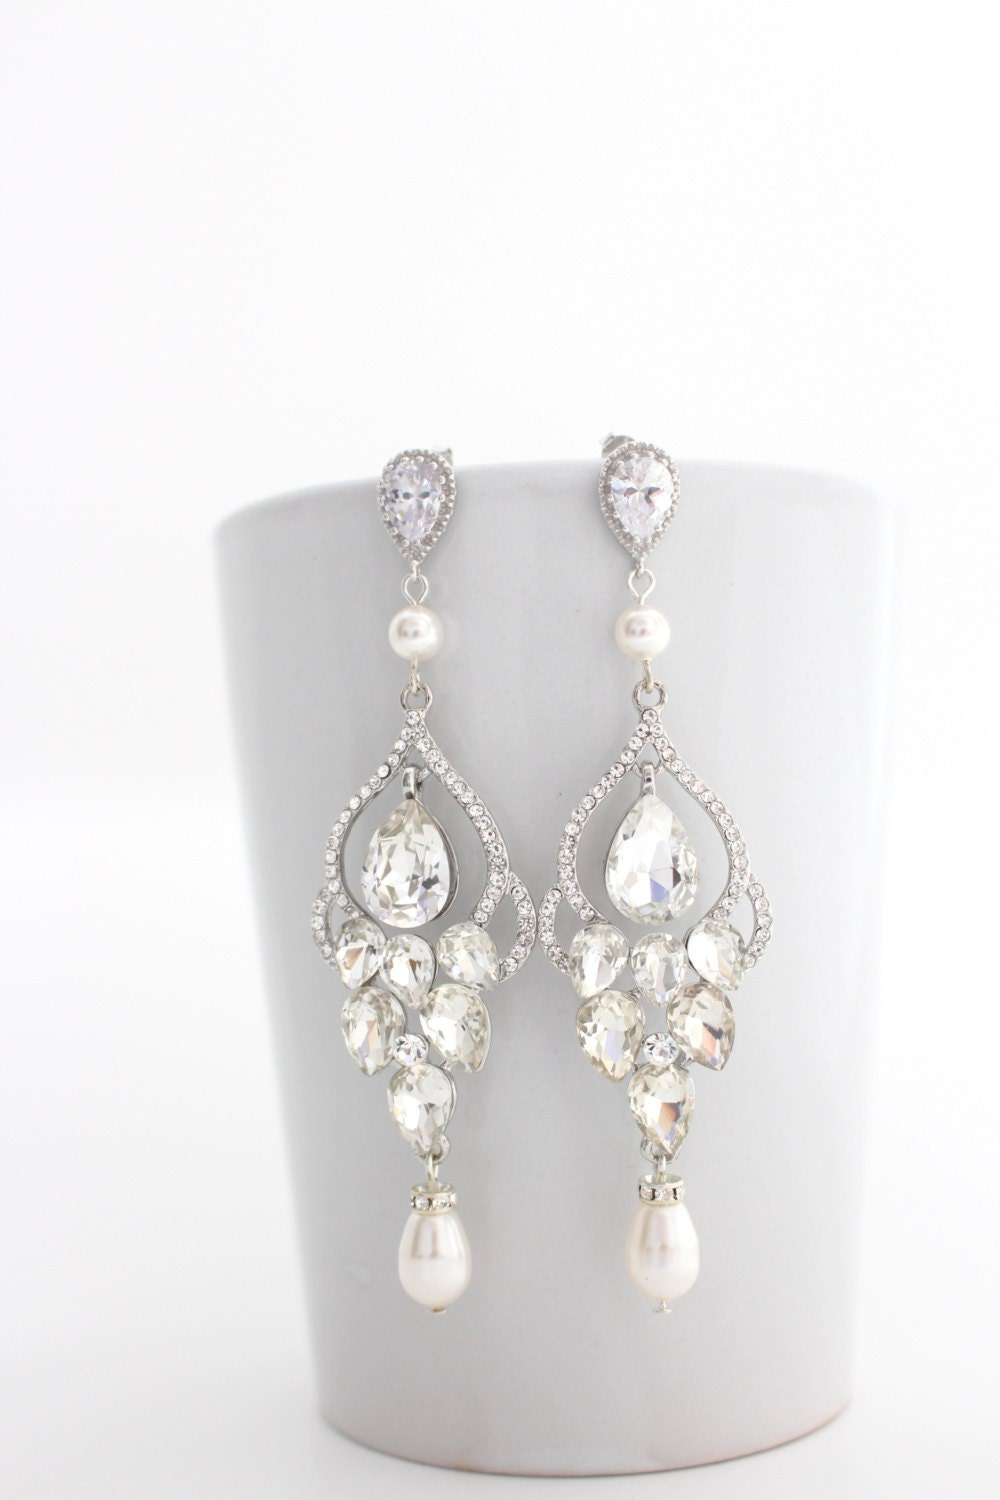 Long Bridal Chandelier Earrings Chandelier Wedding Earrings